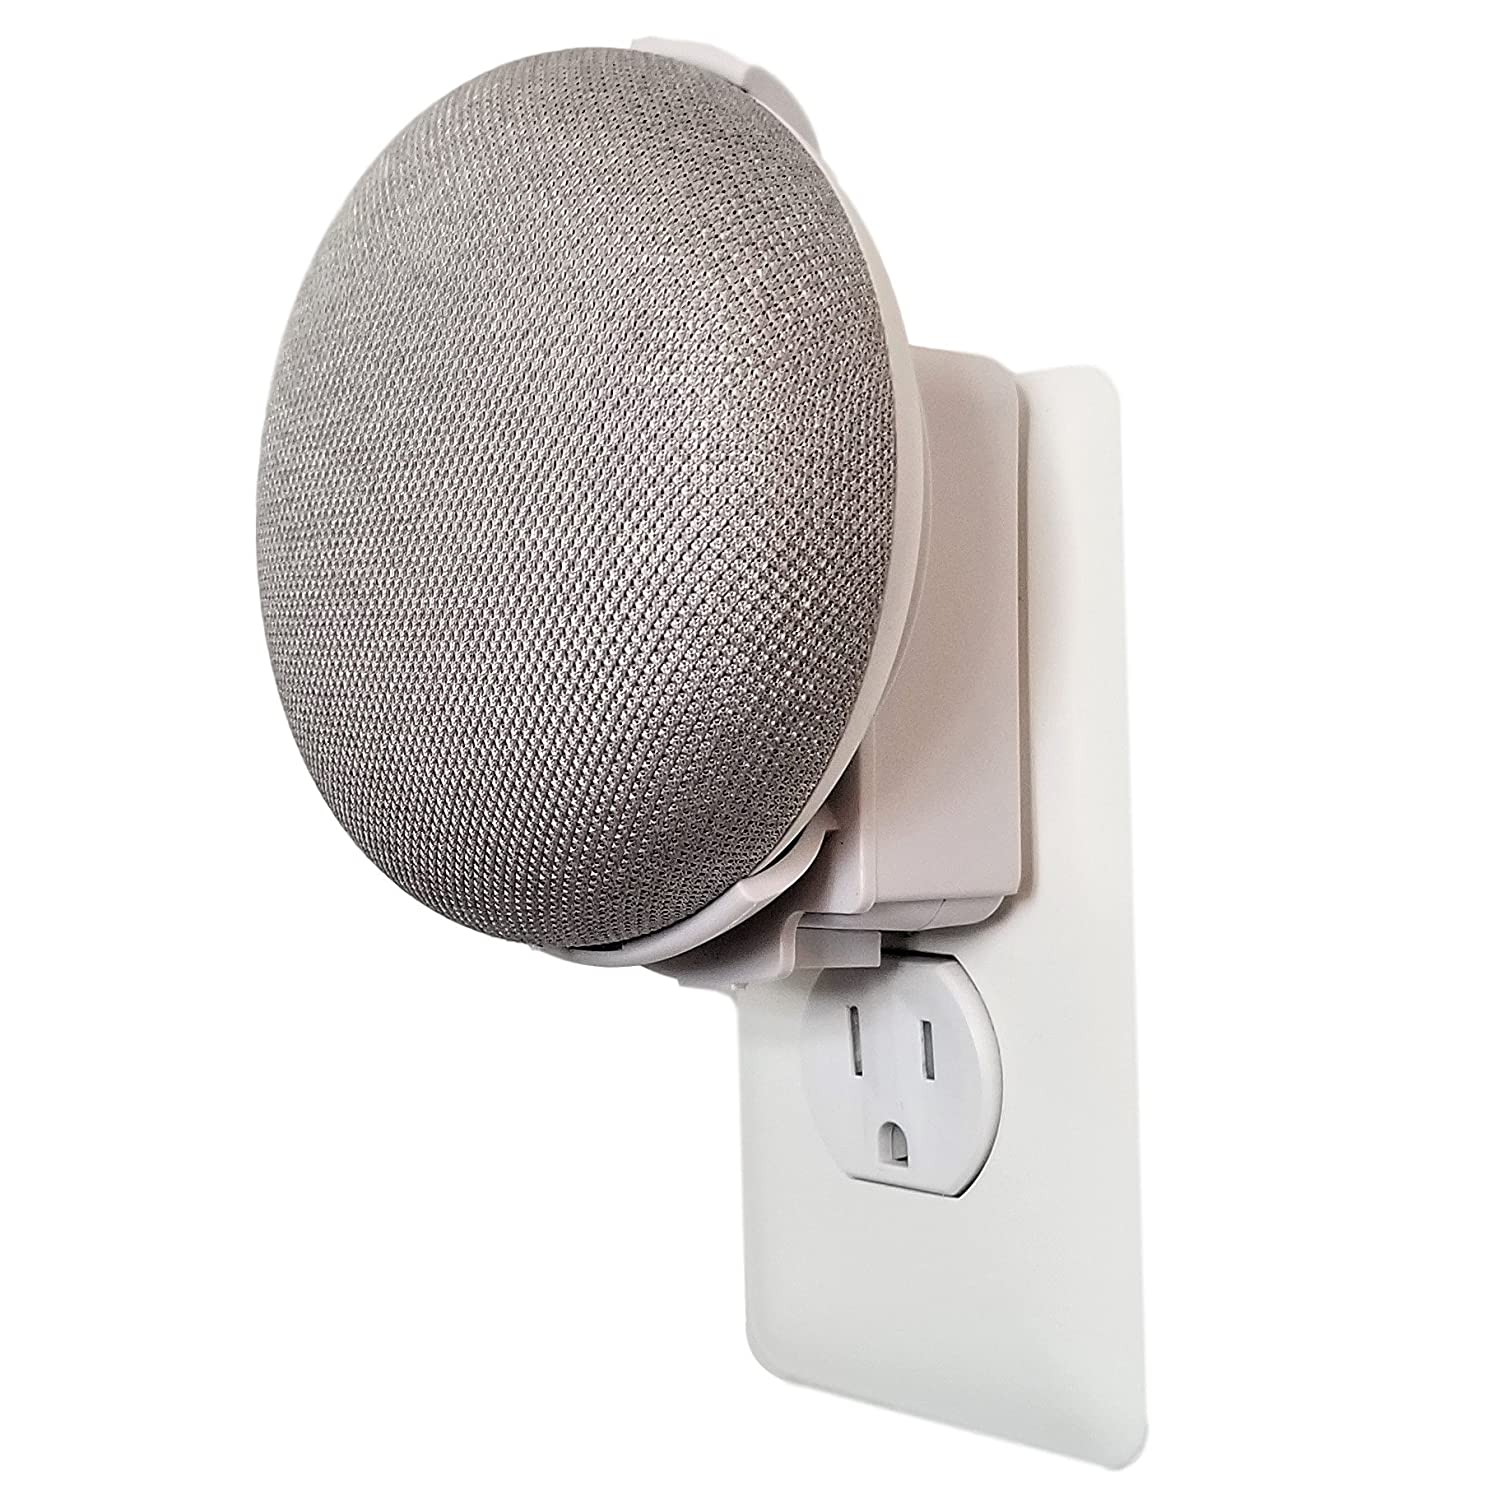 Dot Genie Google Home Mini Backpack: The Simplest and Cleanest Outlet Wall Mount Hanger Stand for Home Mini Voice Assistants by Google - No Cord Wrapping Required - Designed in USA (White)